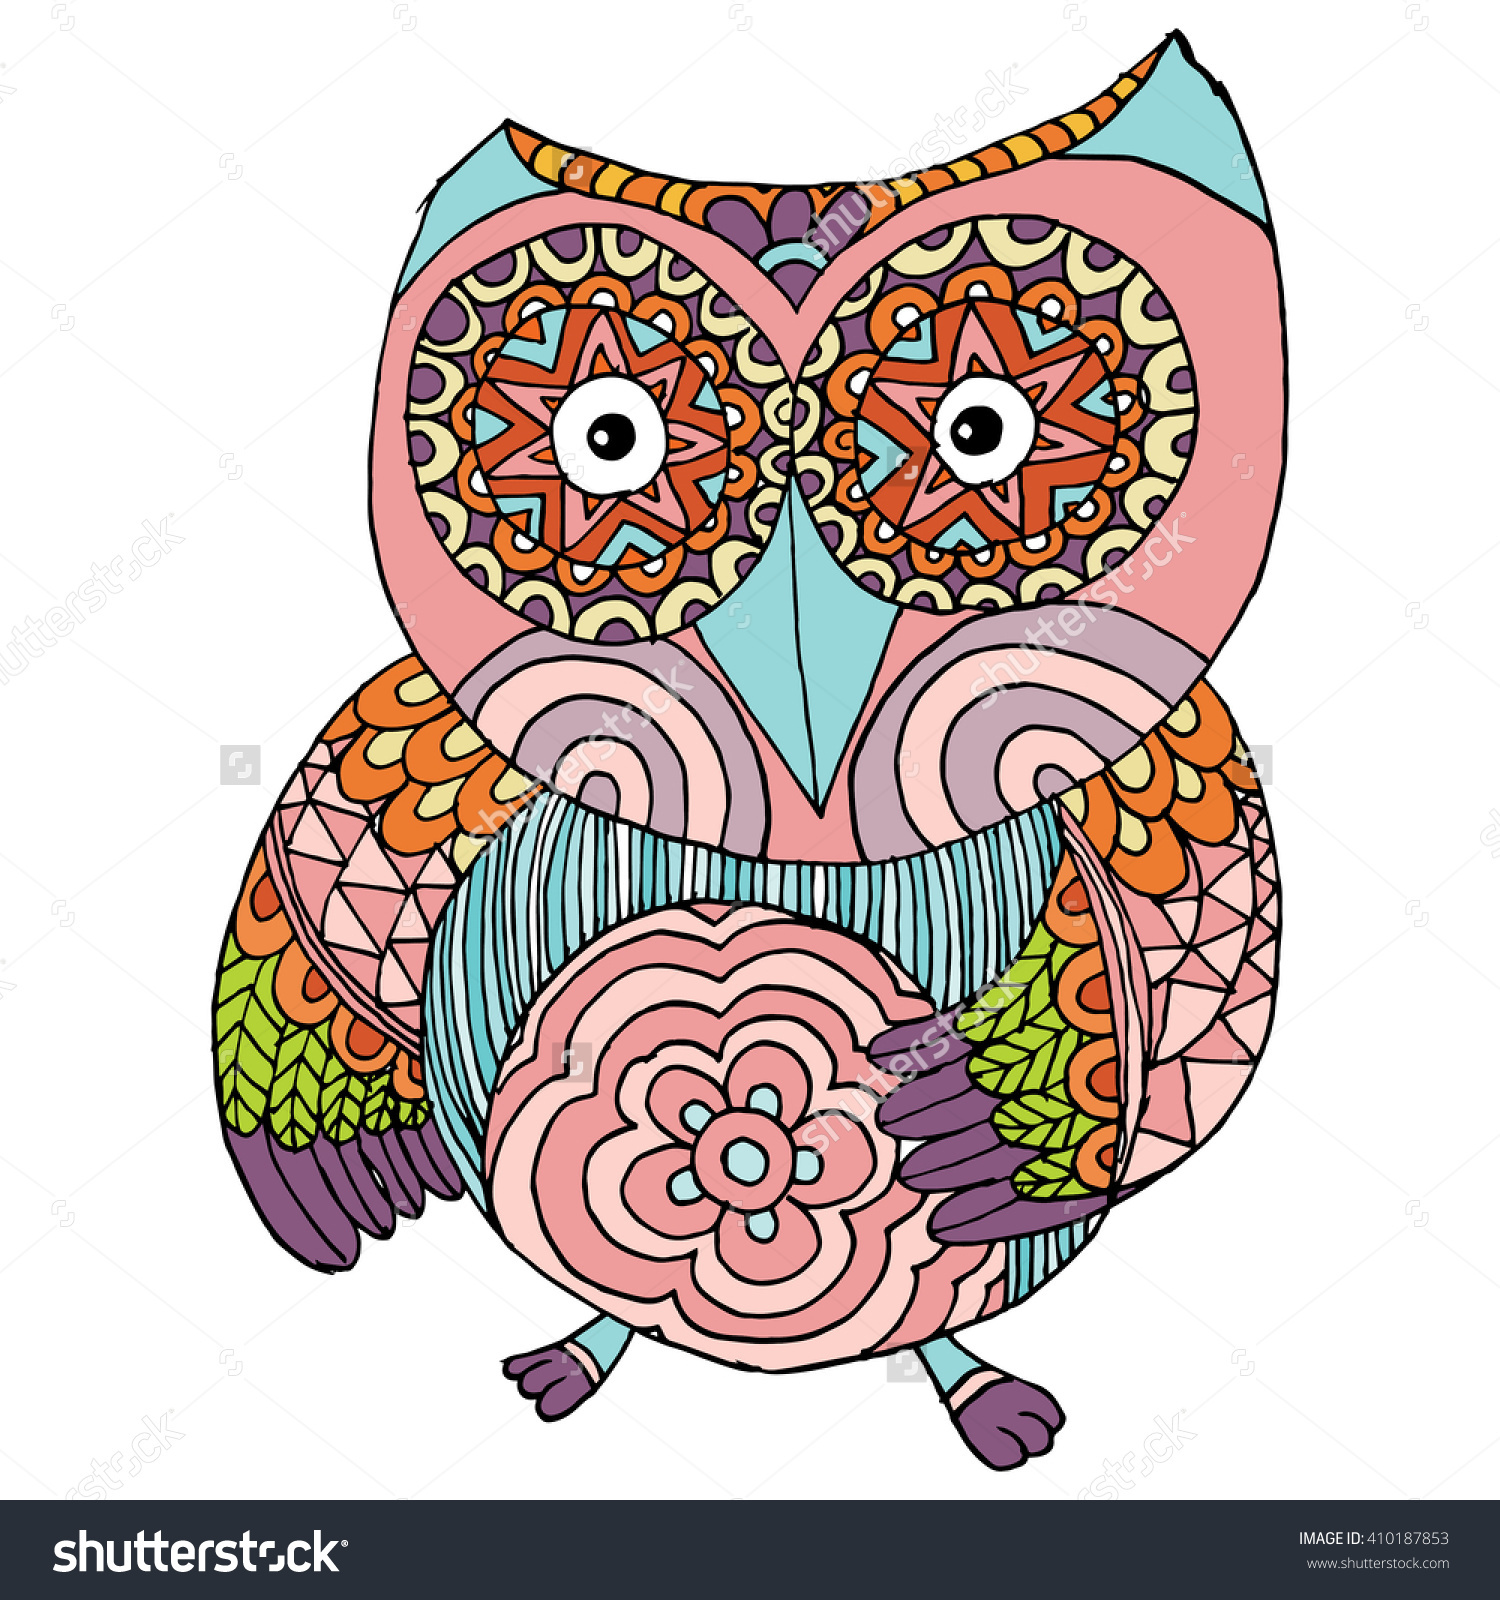 Owlfly clipart #1, Download drawings